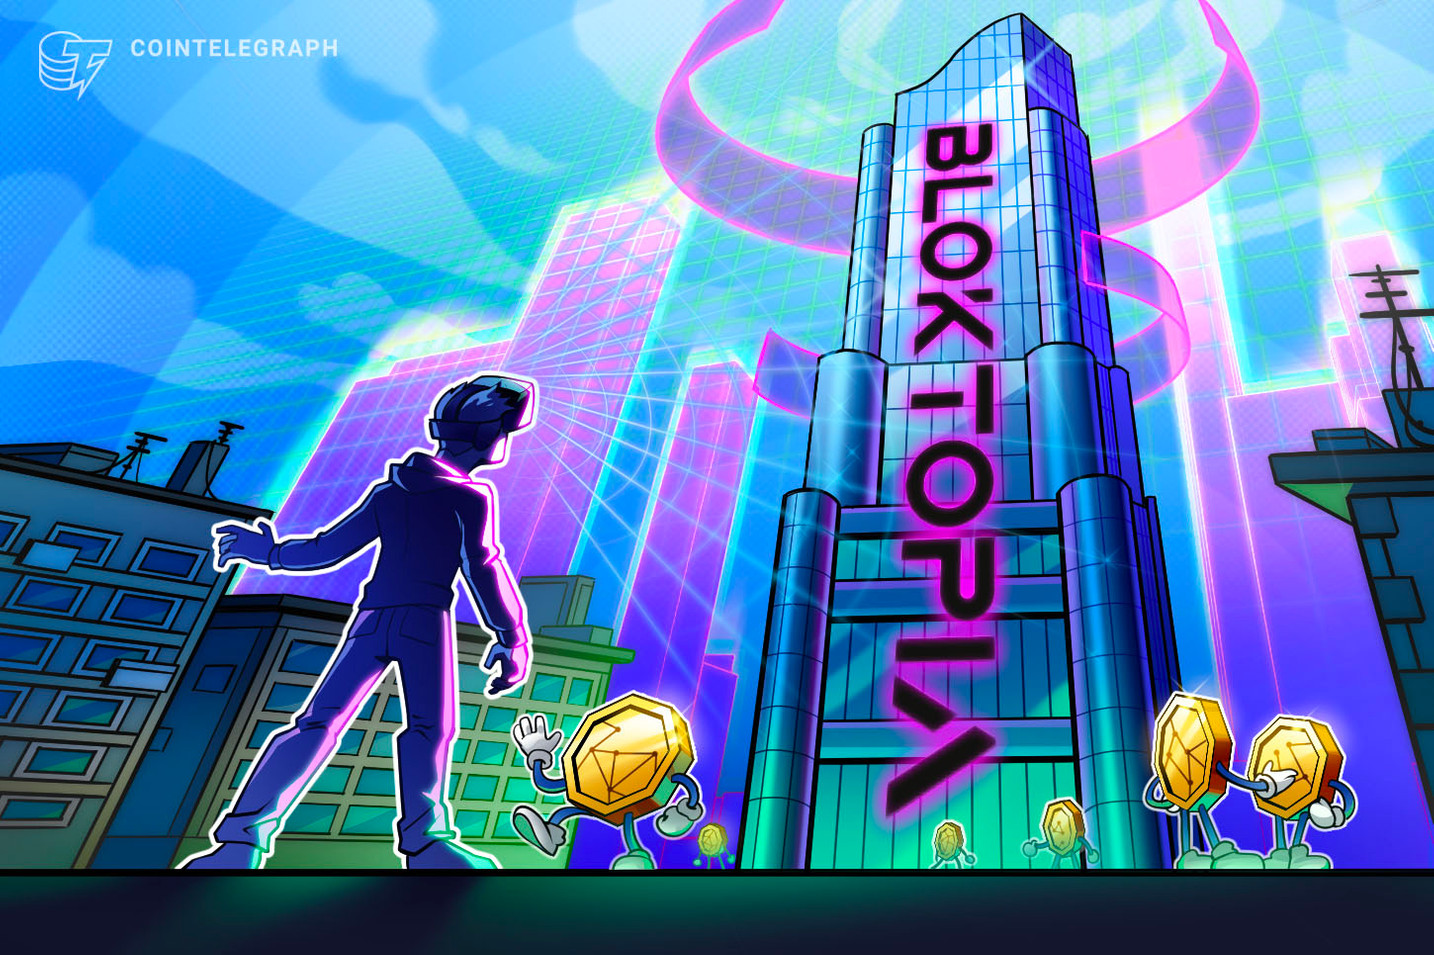 Bloktopia, a VR metaverse, partners with Animoca Brands, Jake Paul and Bitboy to give users access to crypto information